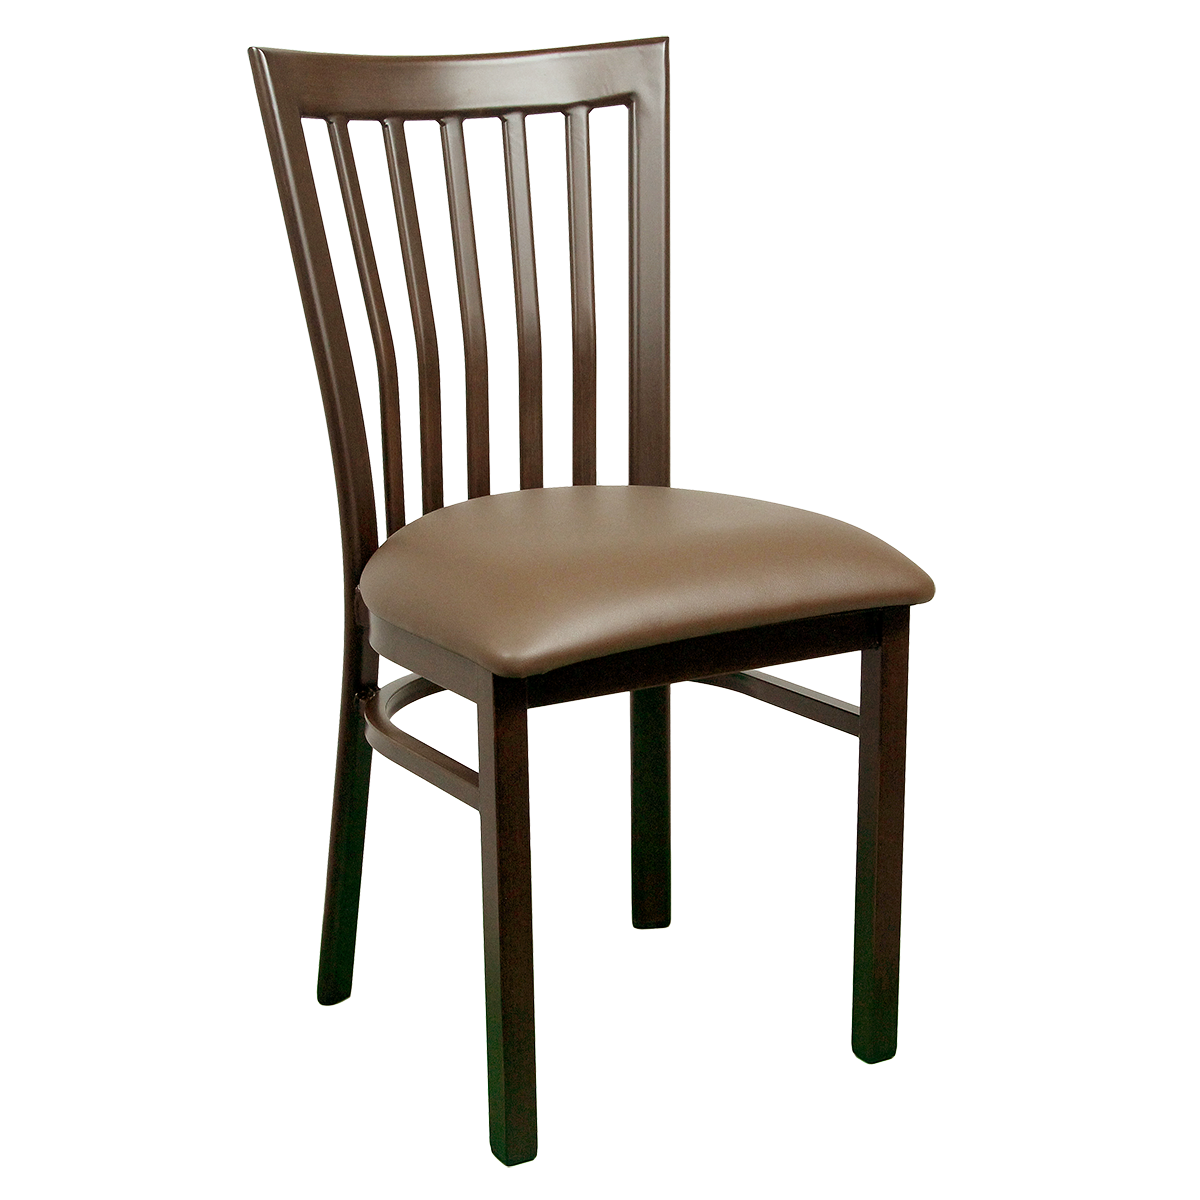 Chairs wood look metal ladder back chair Recliners that look like chairs